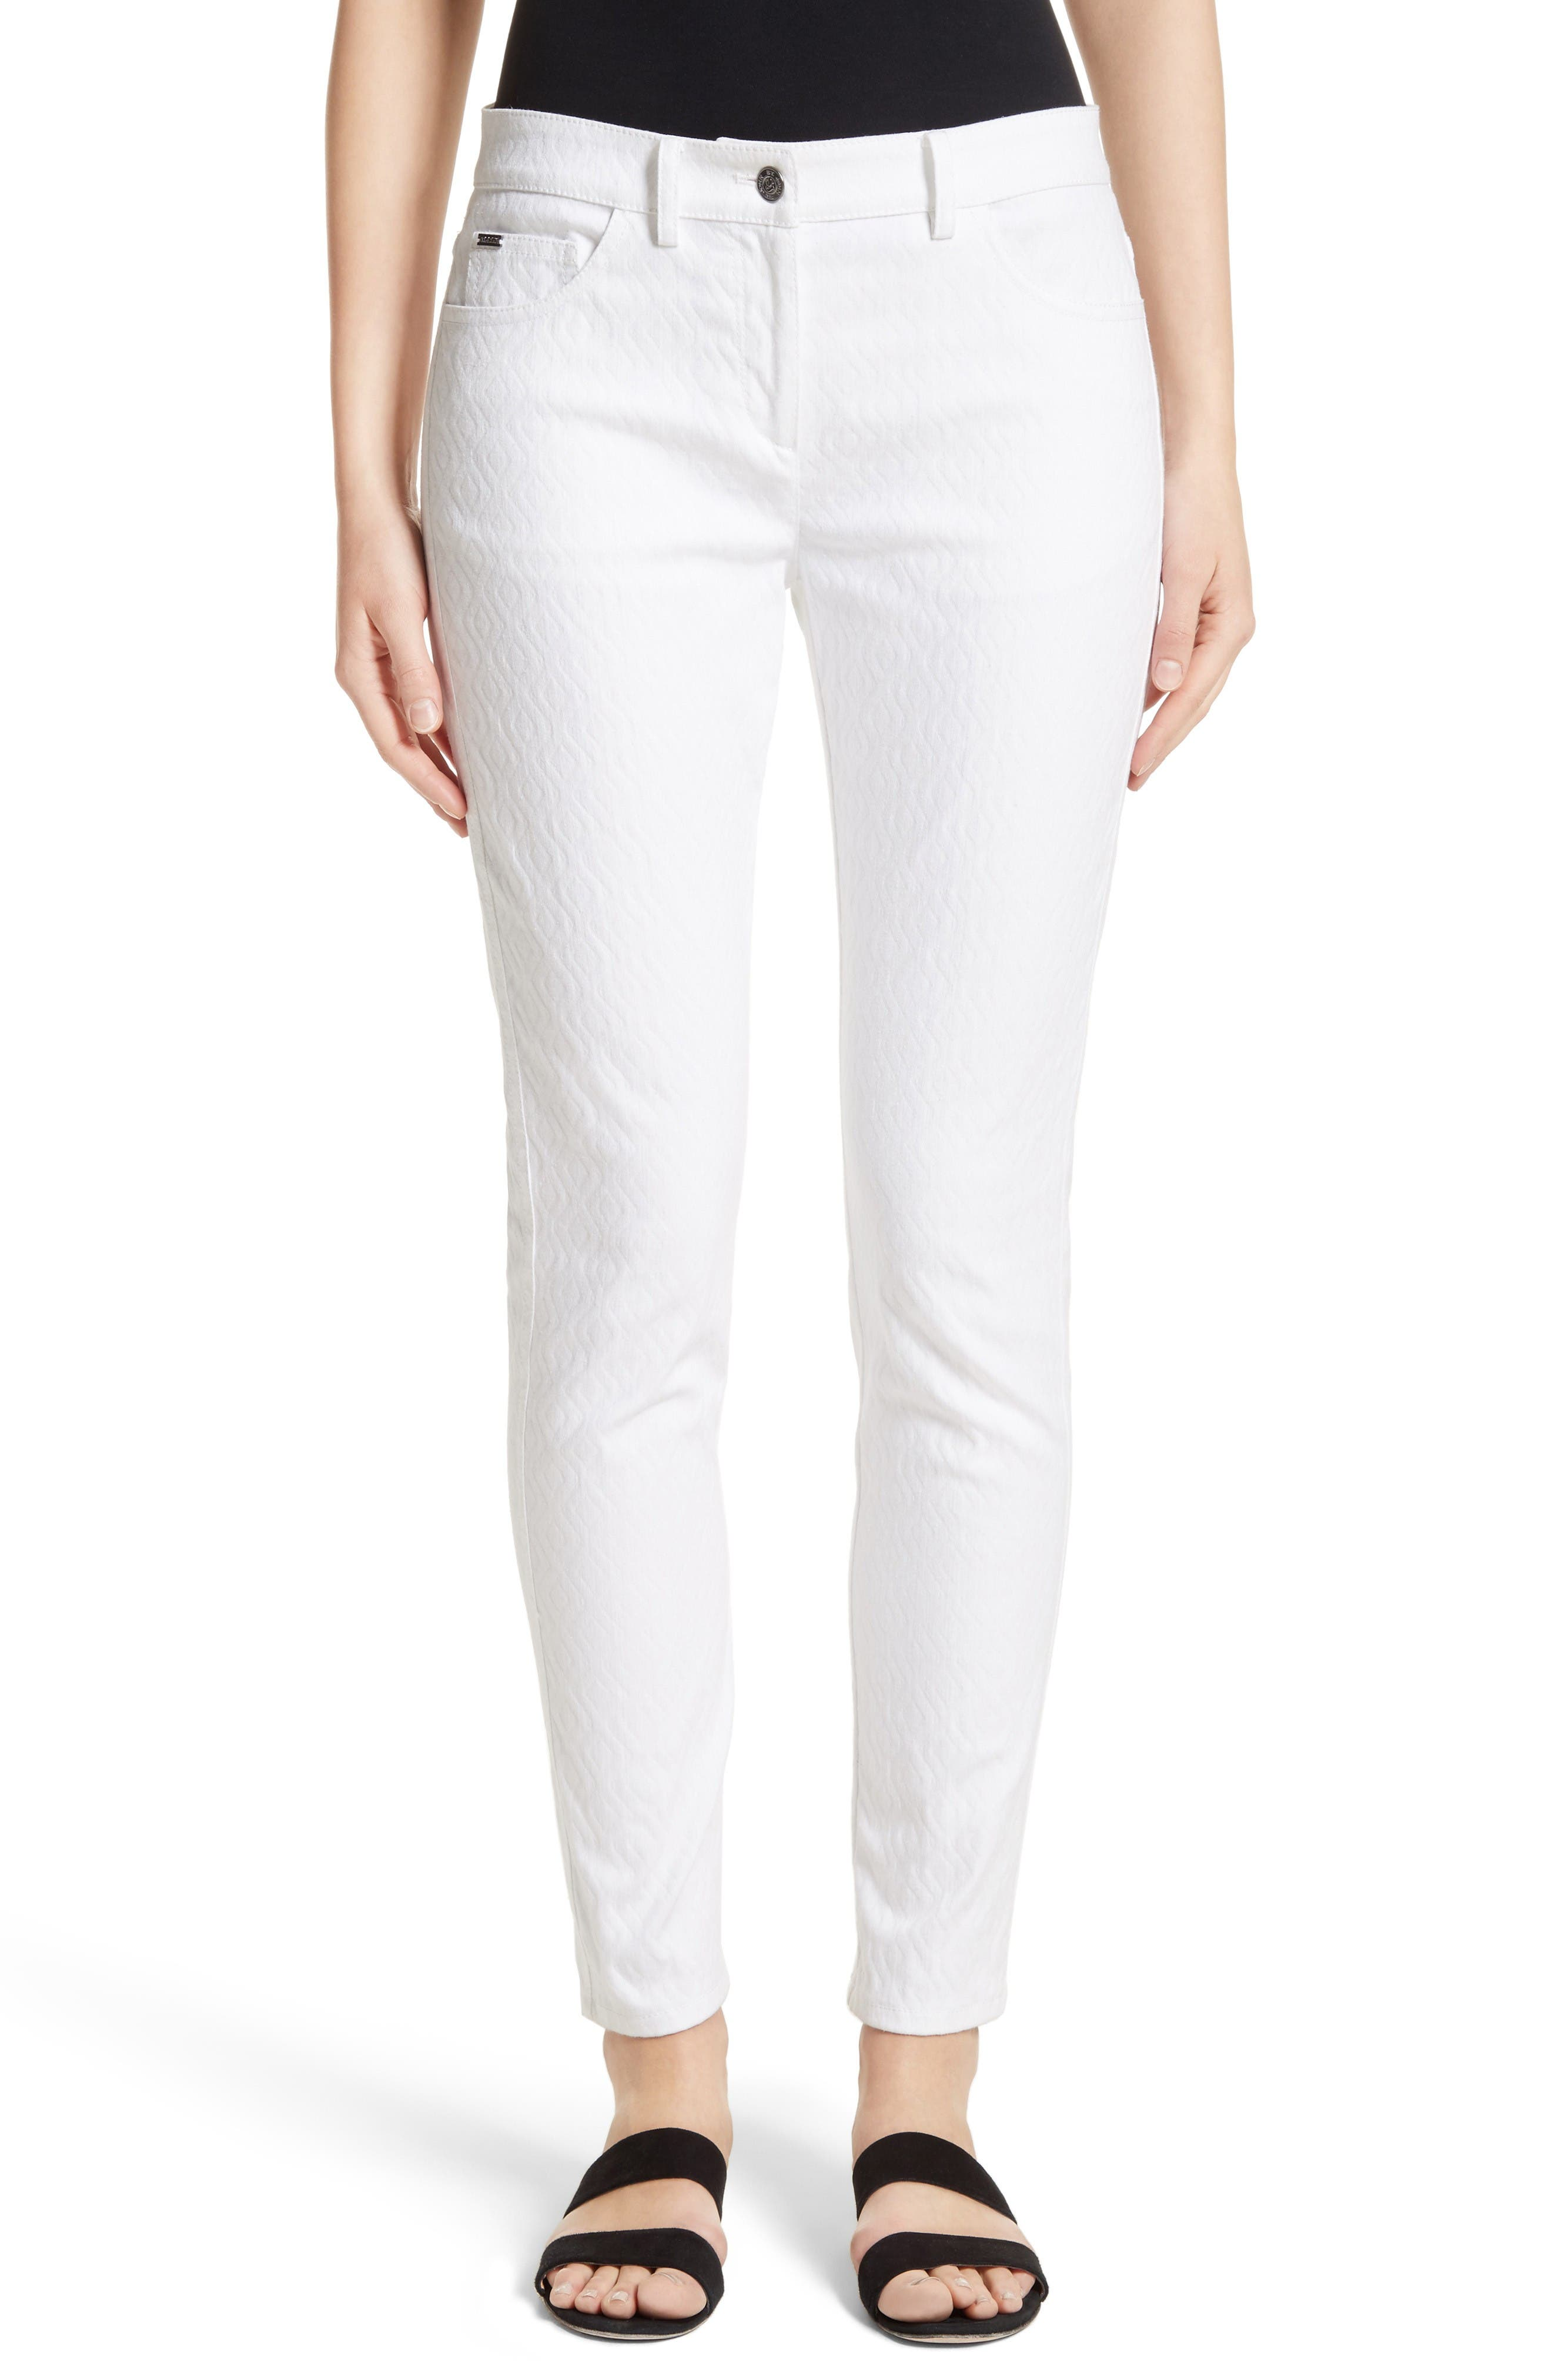 St. John Collection Bardot Diamond Jacquard Denim Jeans